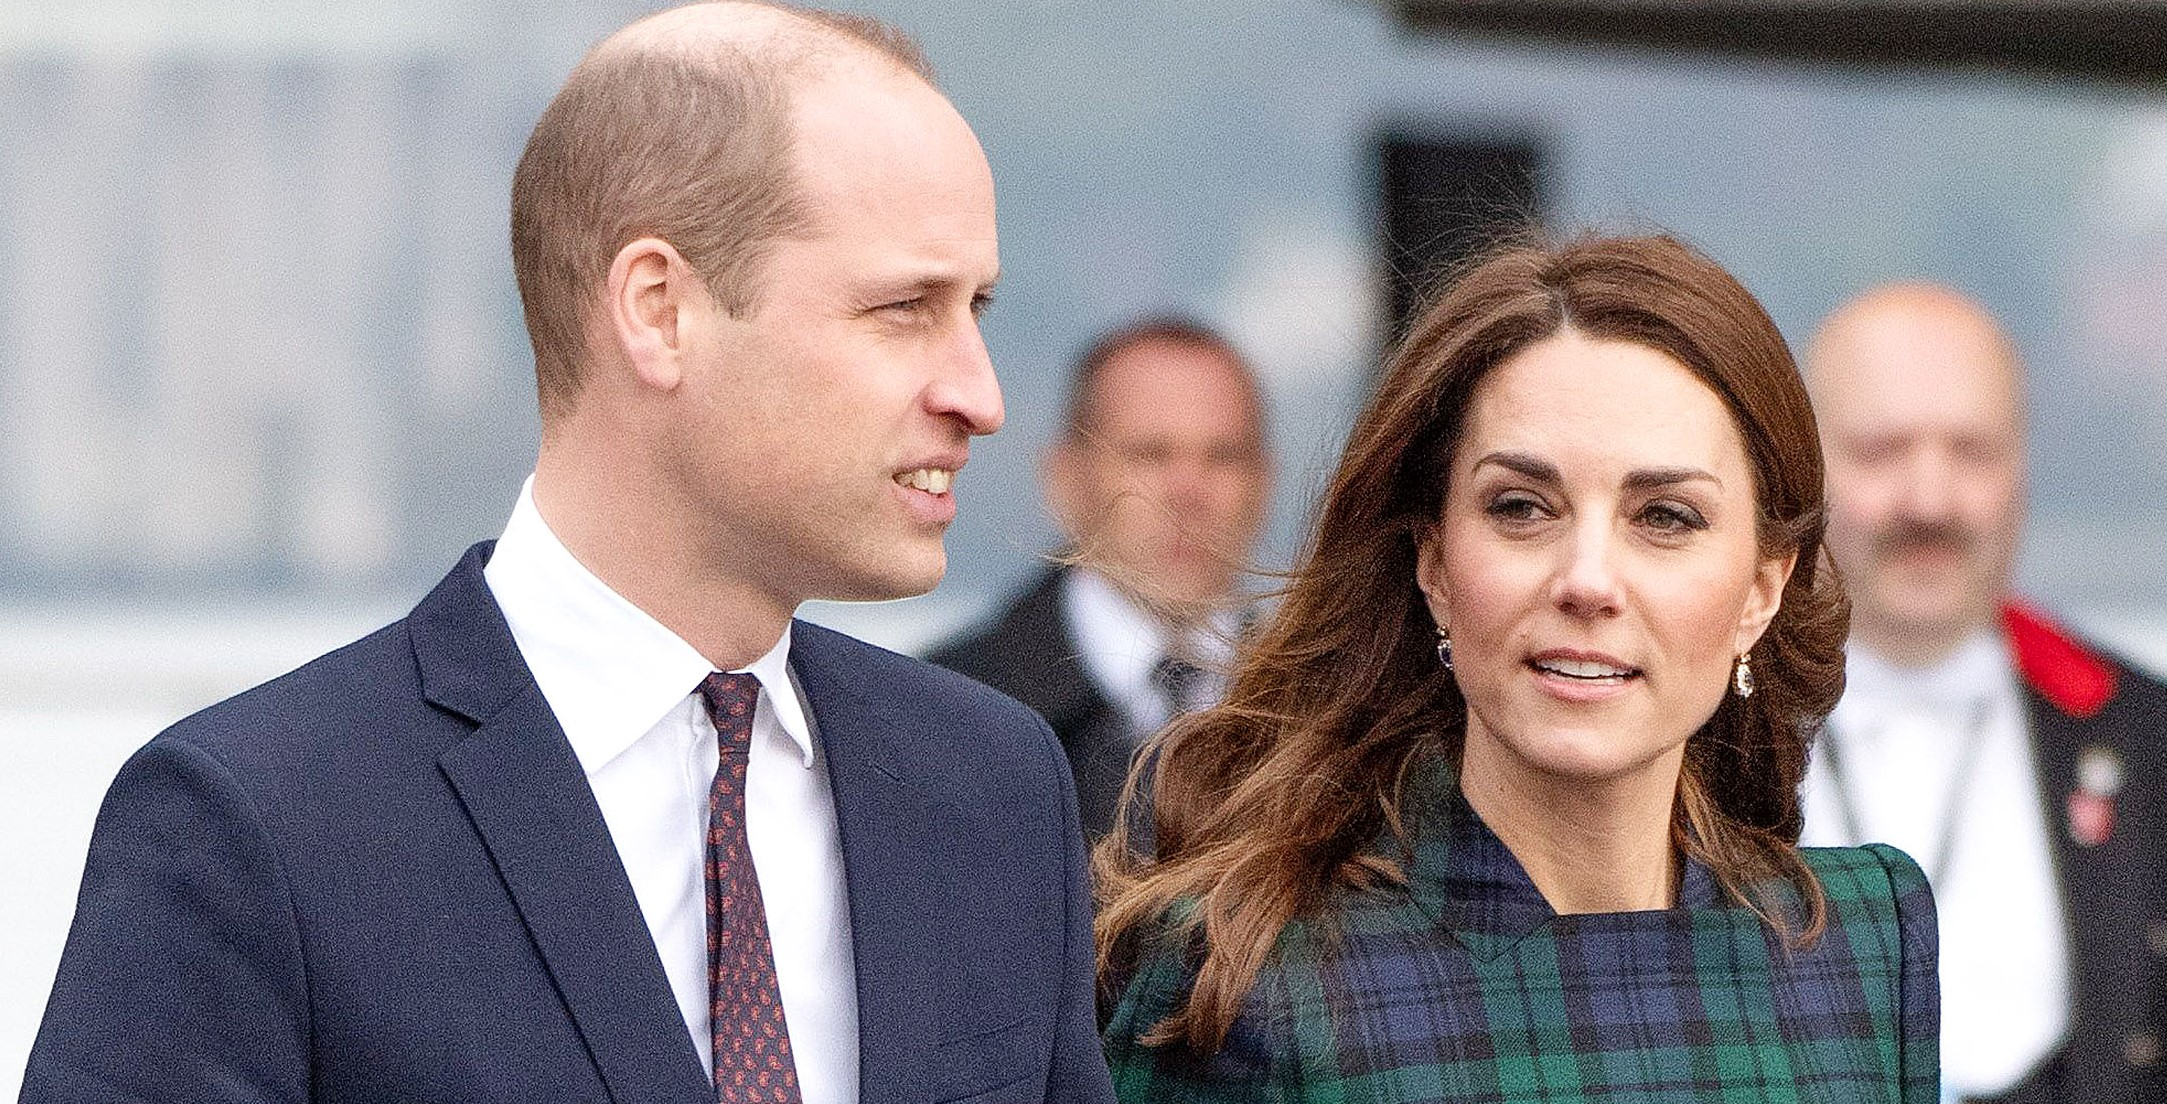 William and Kate share cute photo of Prince Louis to celebrate Prince Charles' birthday